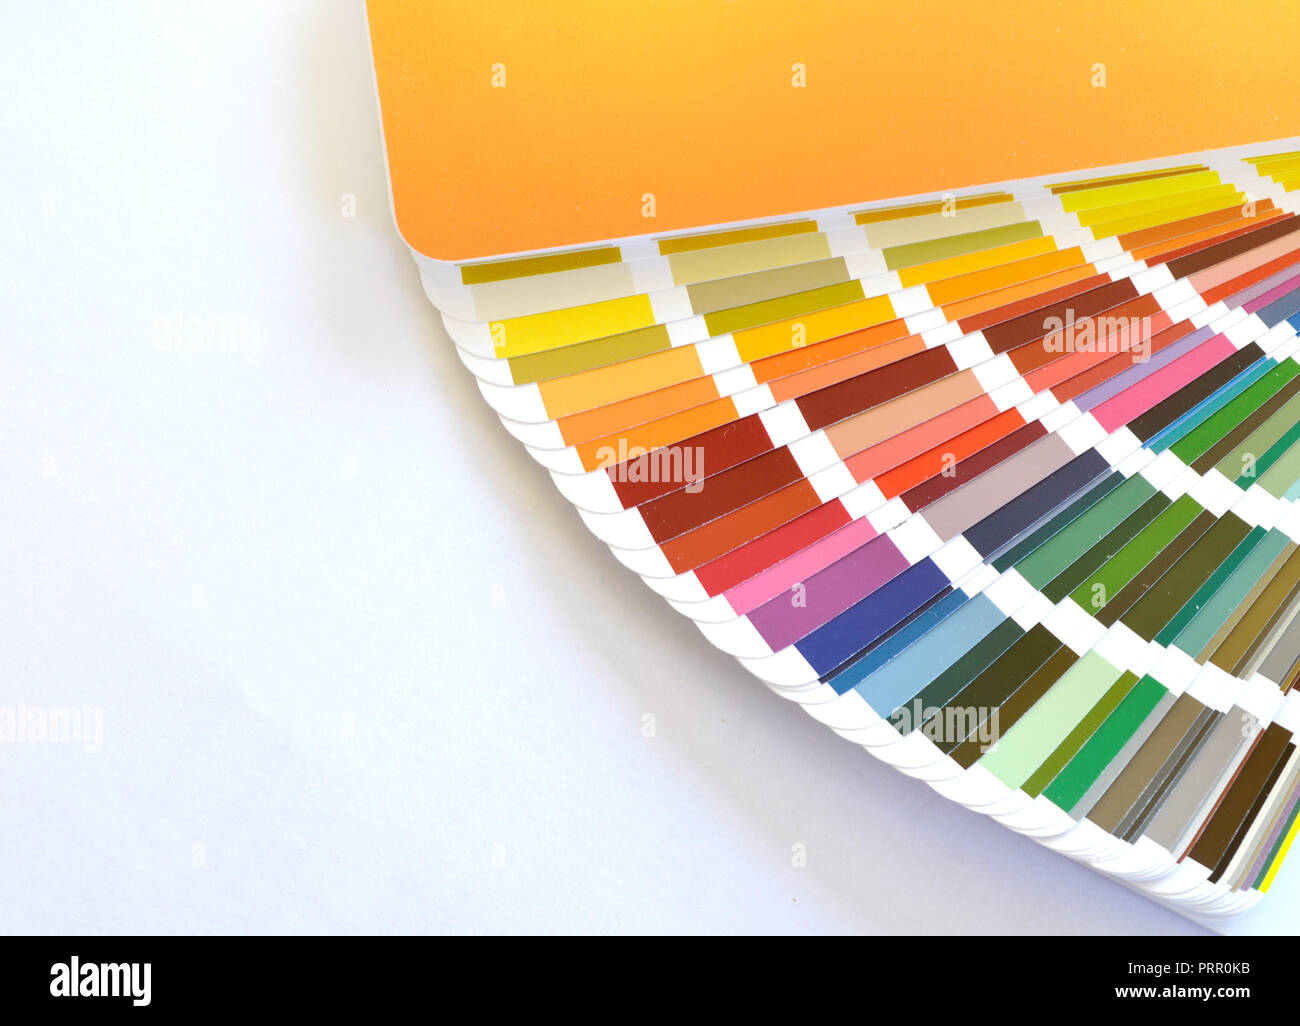 Ral Farben Stock Photos Ral Farben Stock Images Alamy